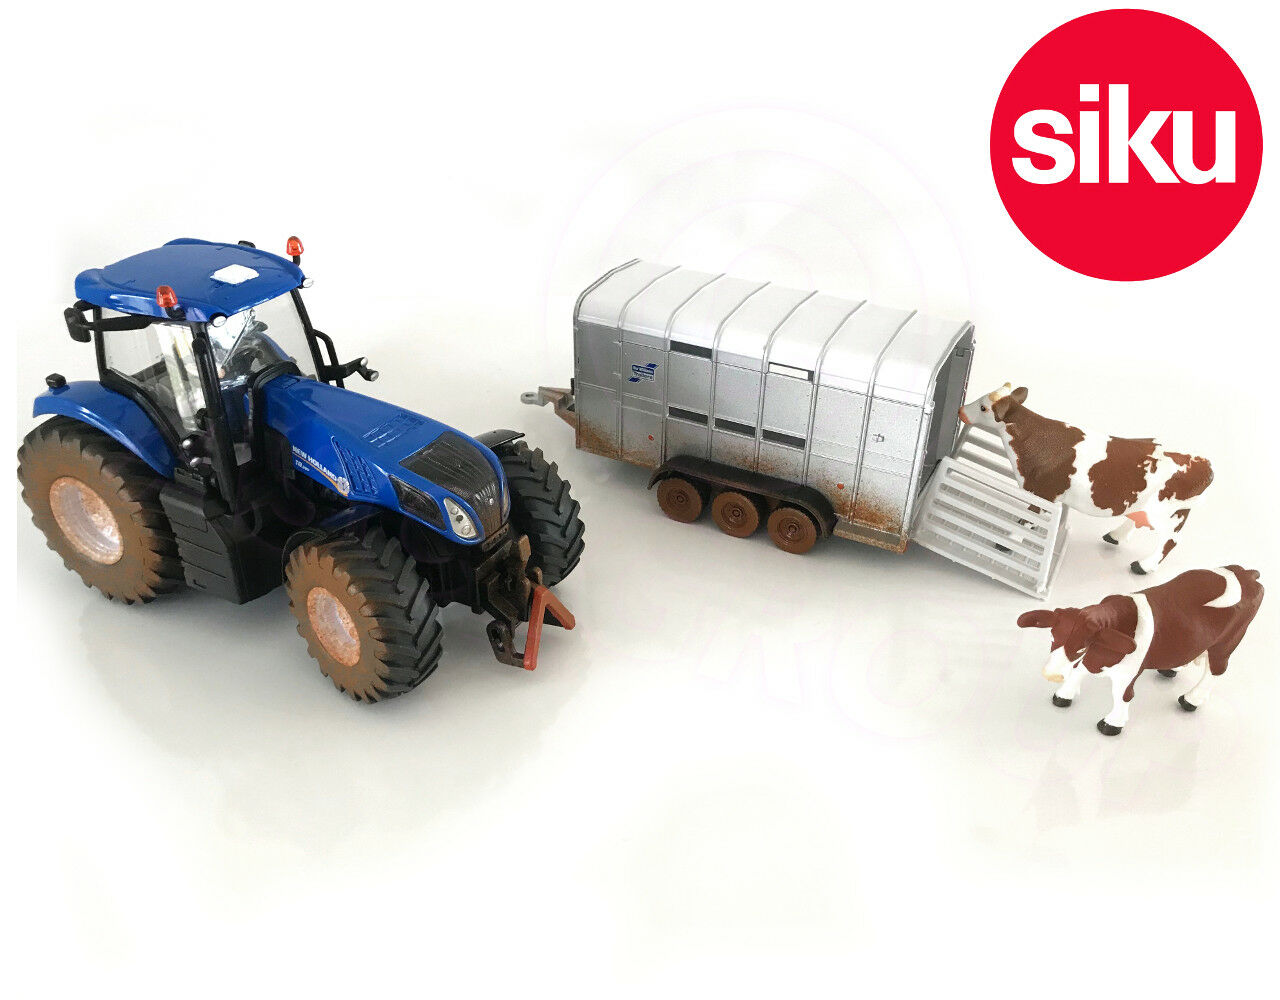 Siku 8607 fangoso New Holland T8.390 Tractor + Ifor Williams Remolque 1 32 DIE-CAST